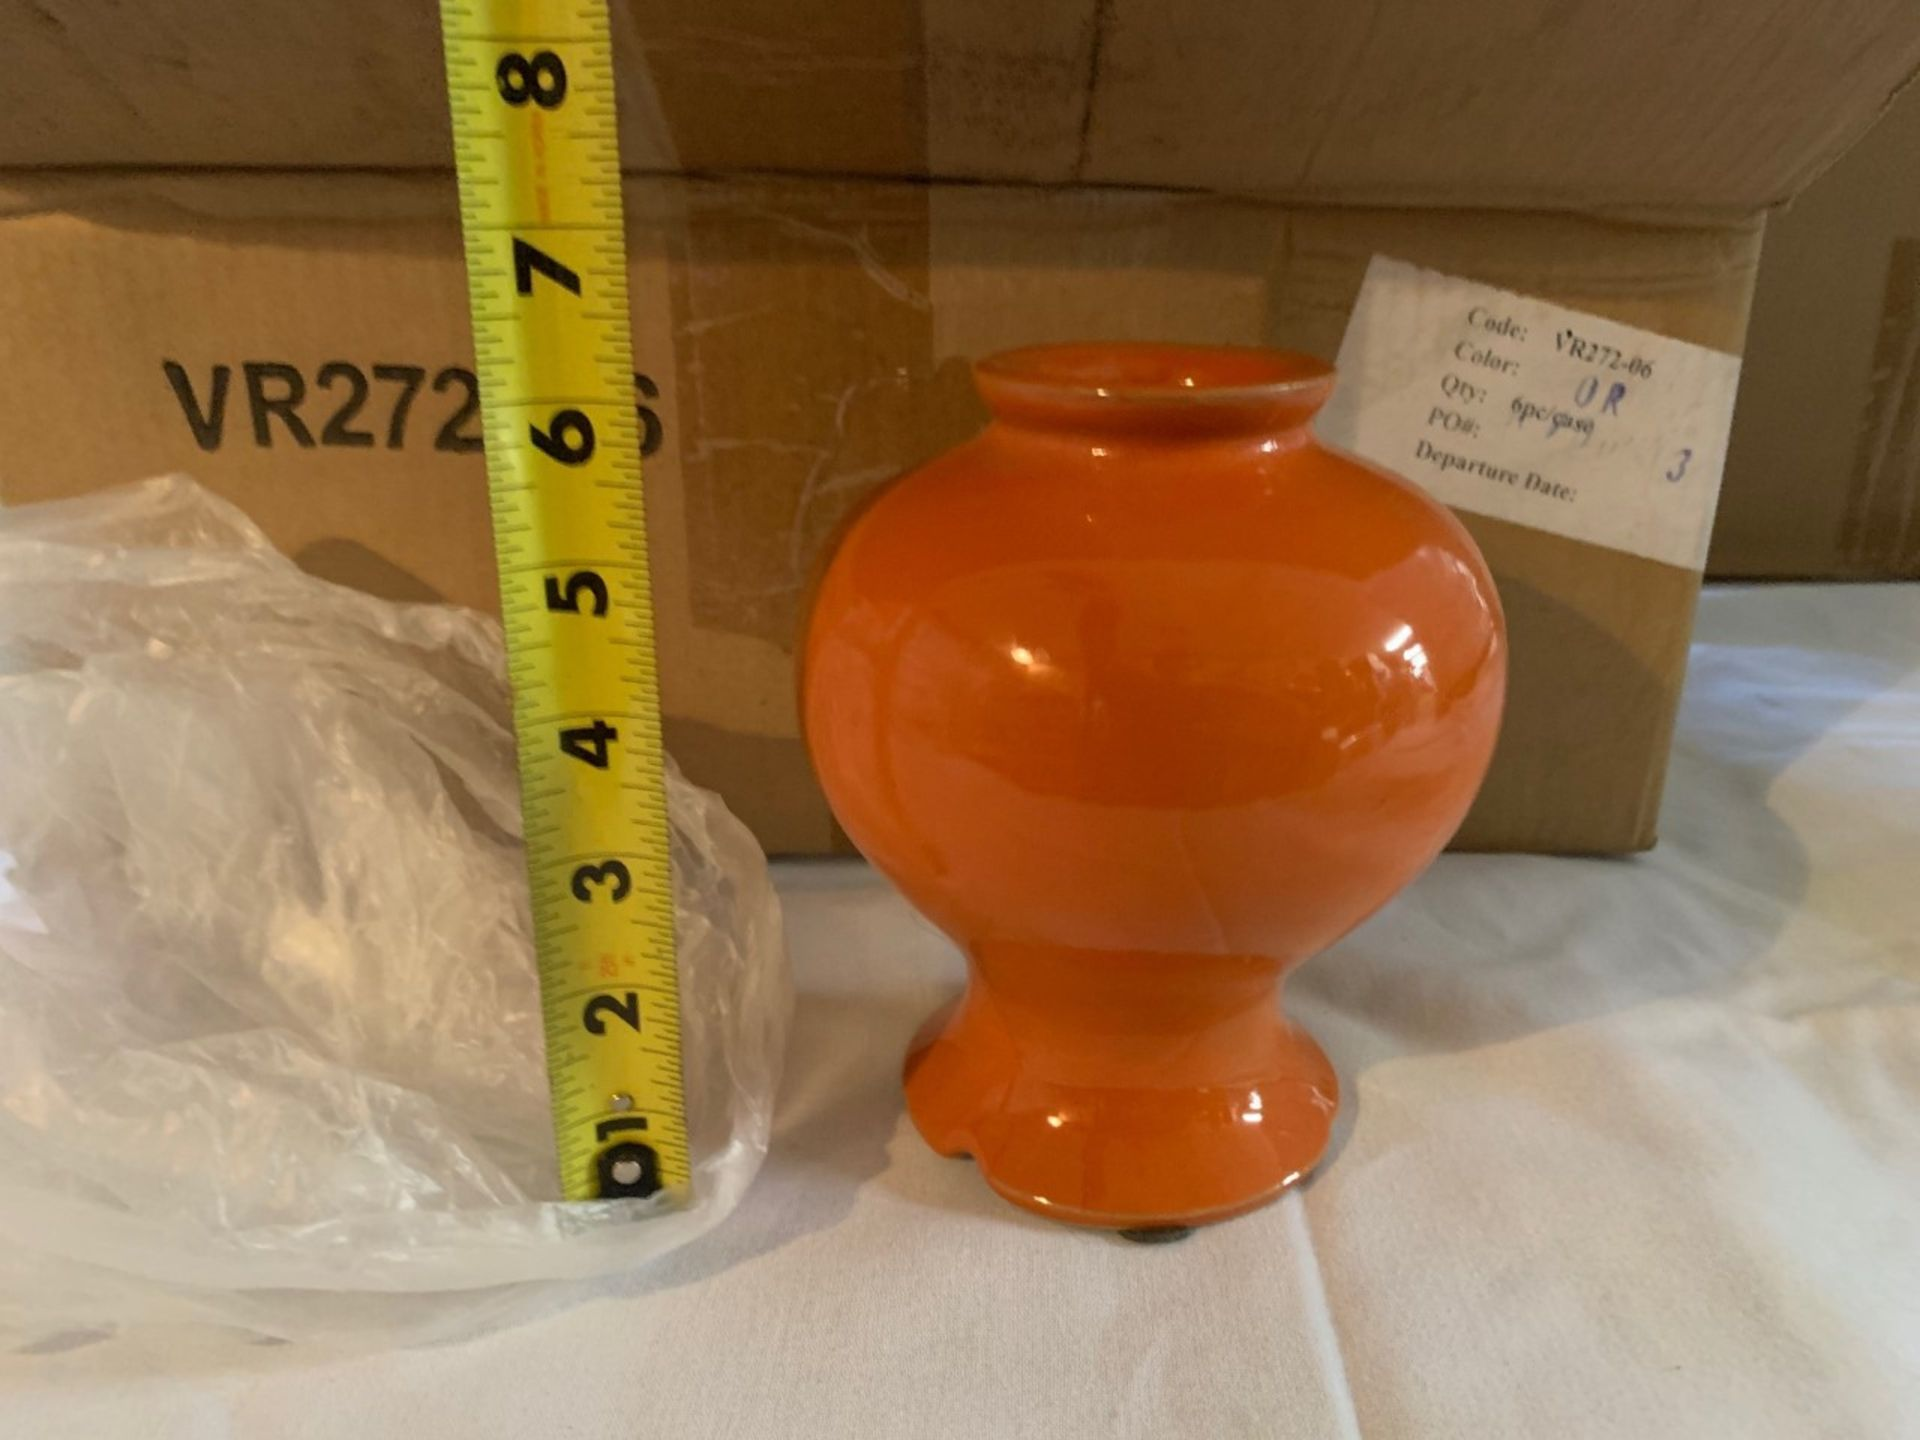 Lot 1452 - Vase Pottery VR272-06 mixed colors